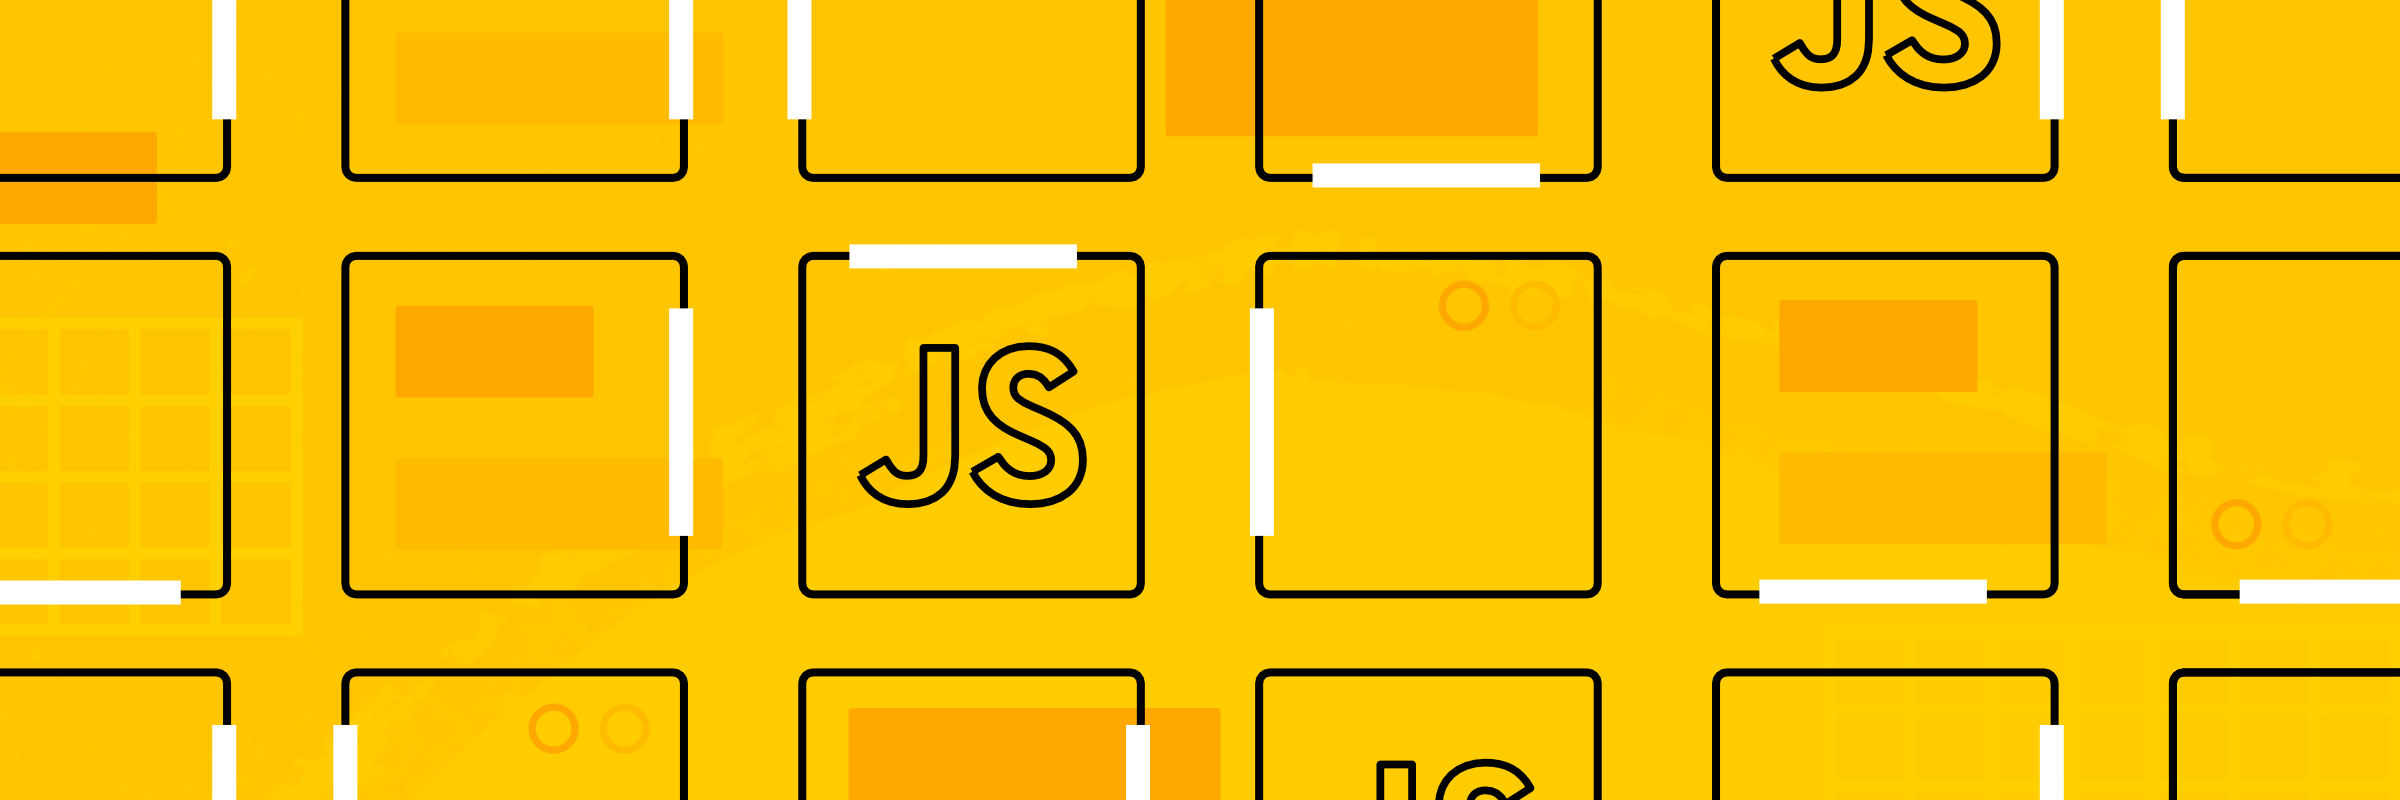 Let's play bingo with JavaScript!